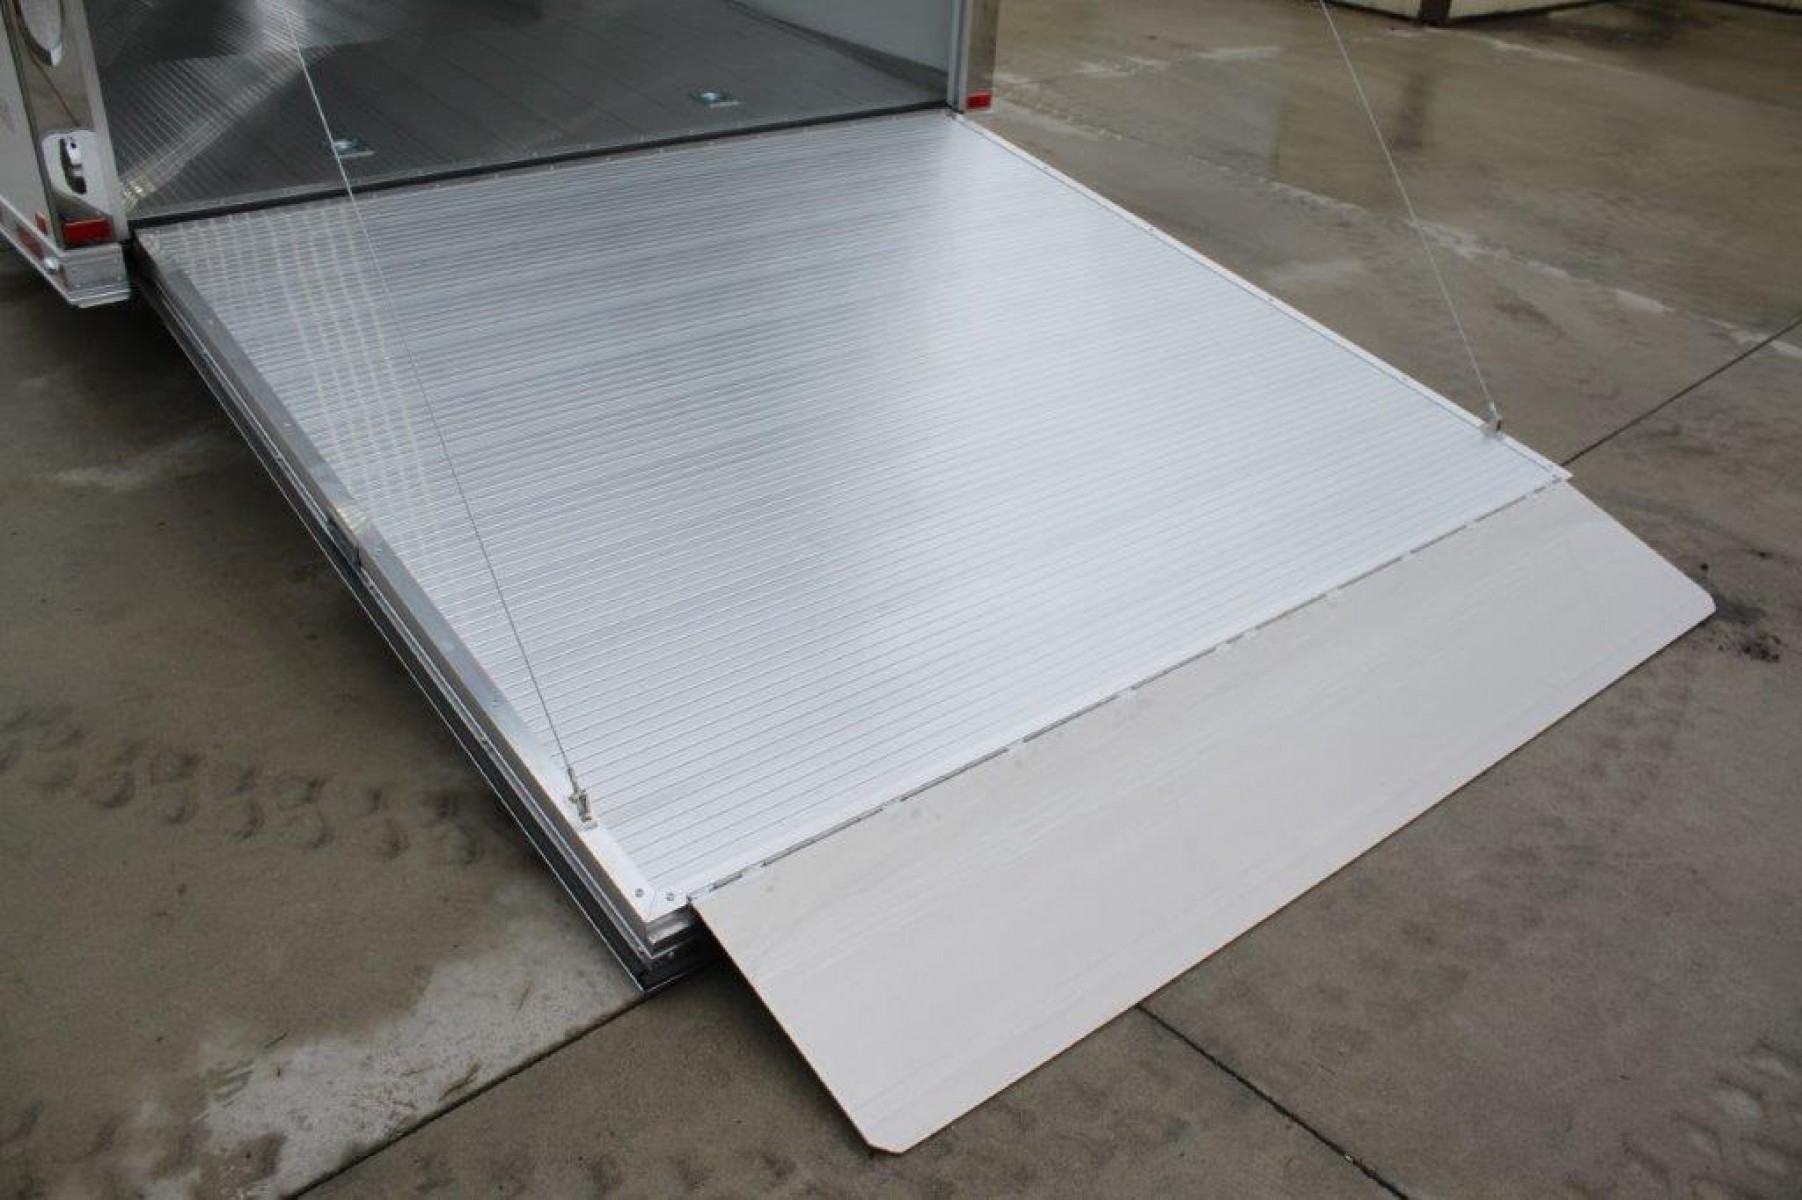 Extruded Aluminum Trailer Flooring Carpet Vidalondon